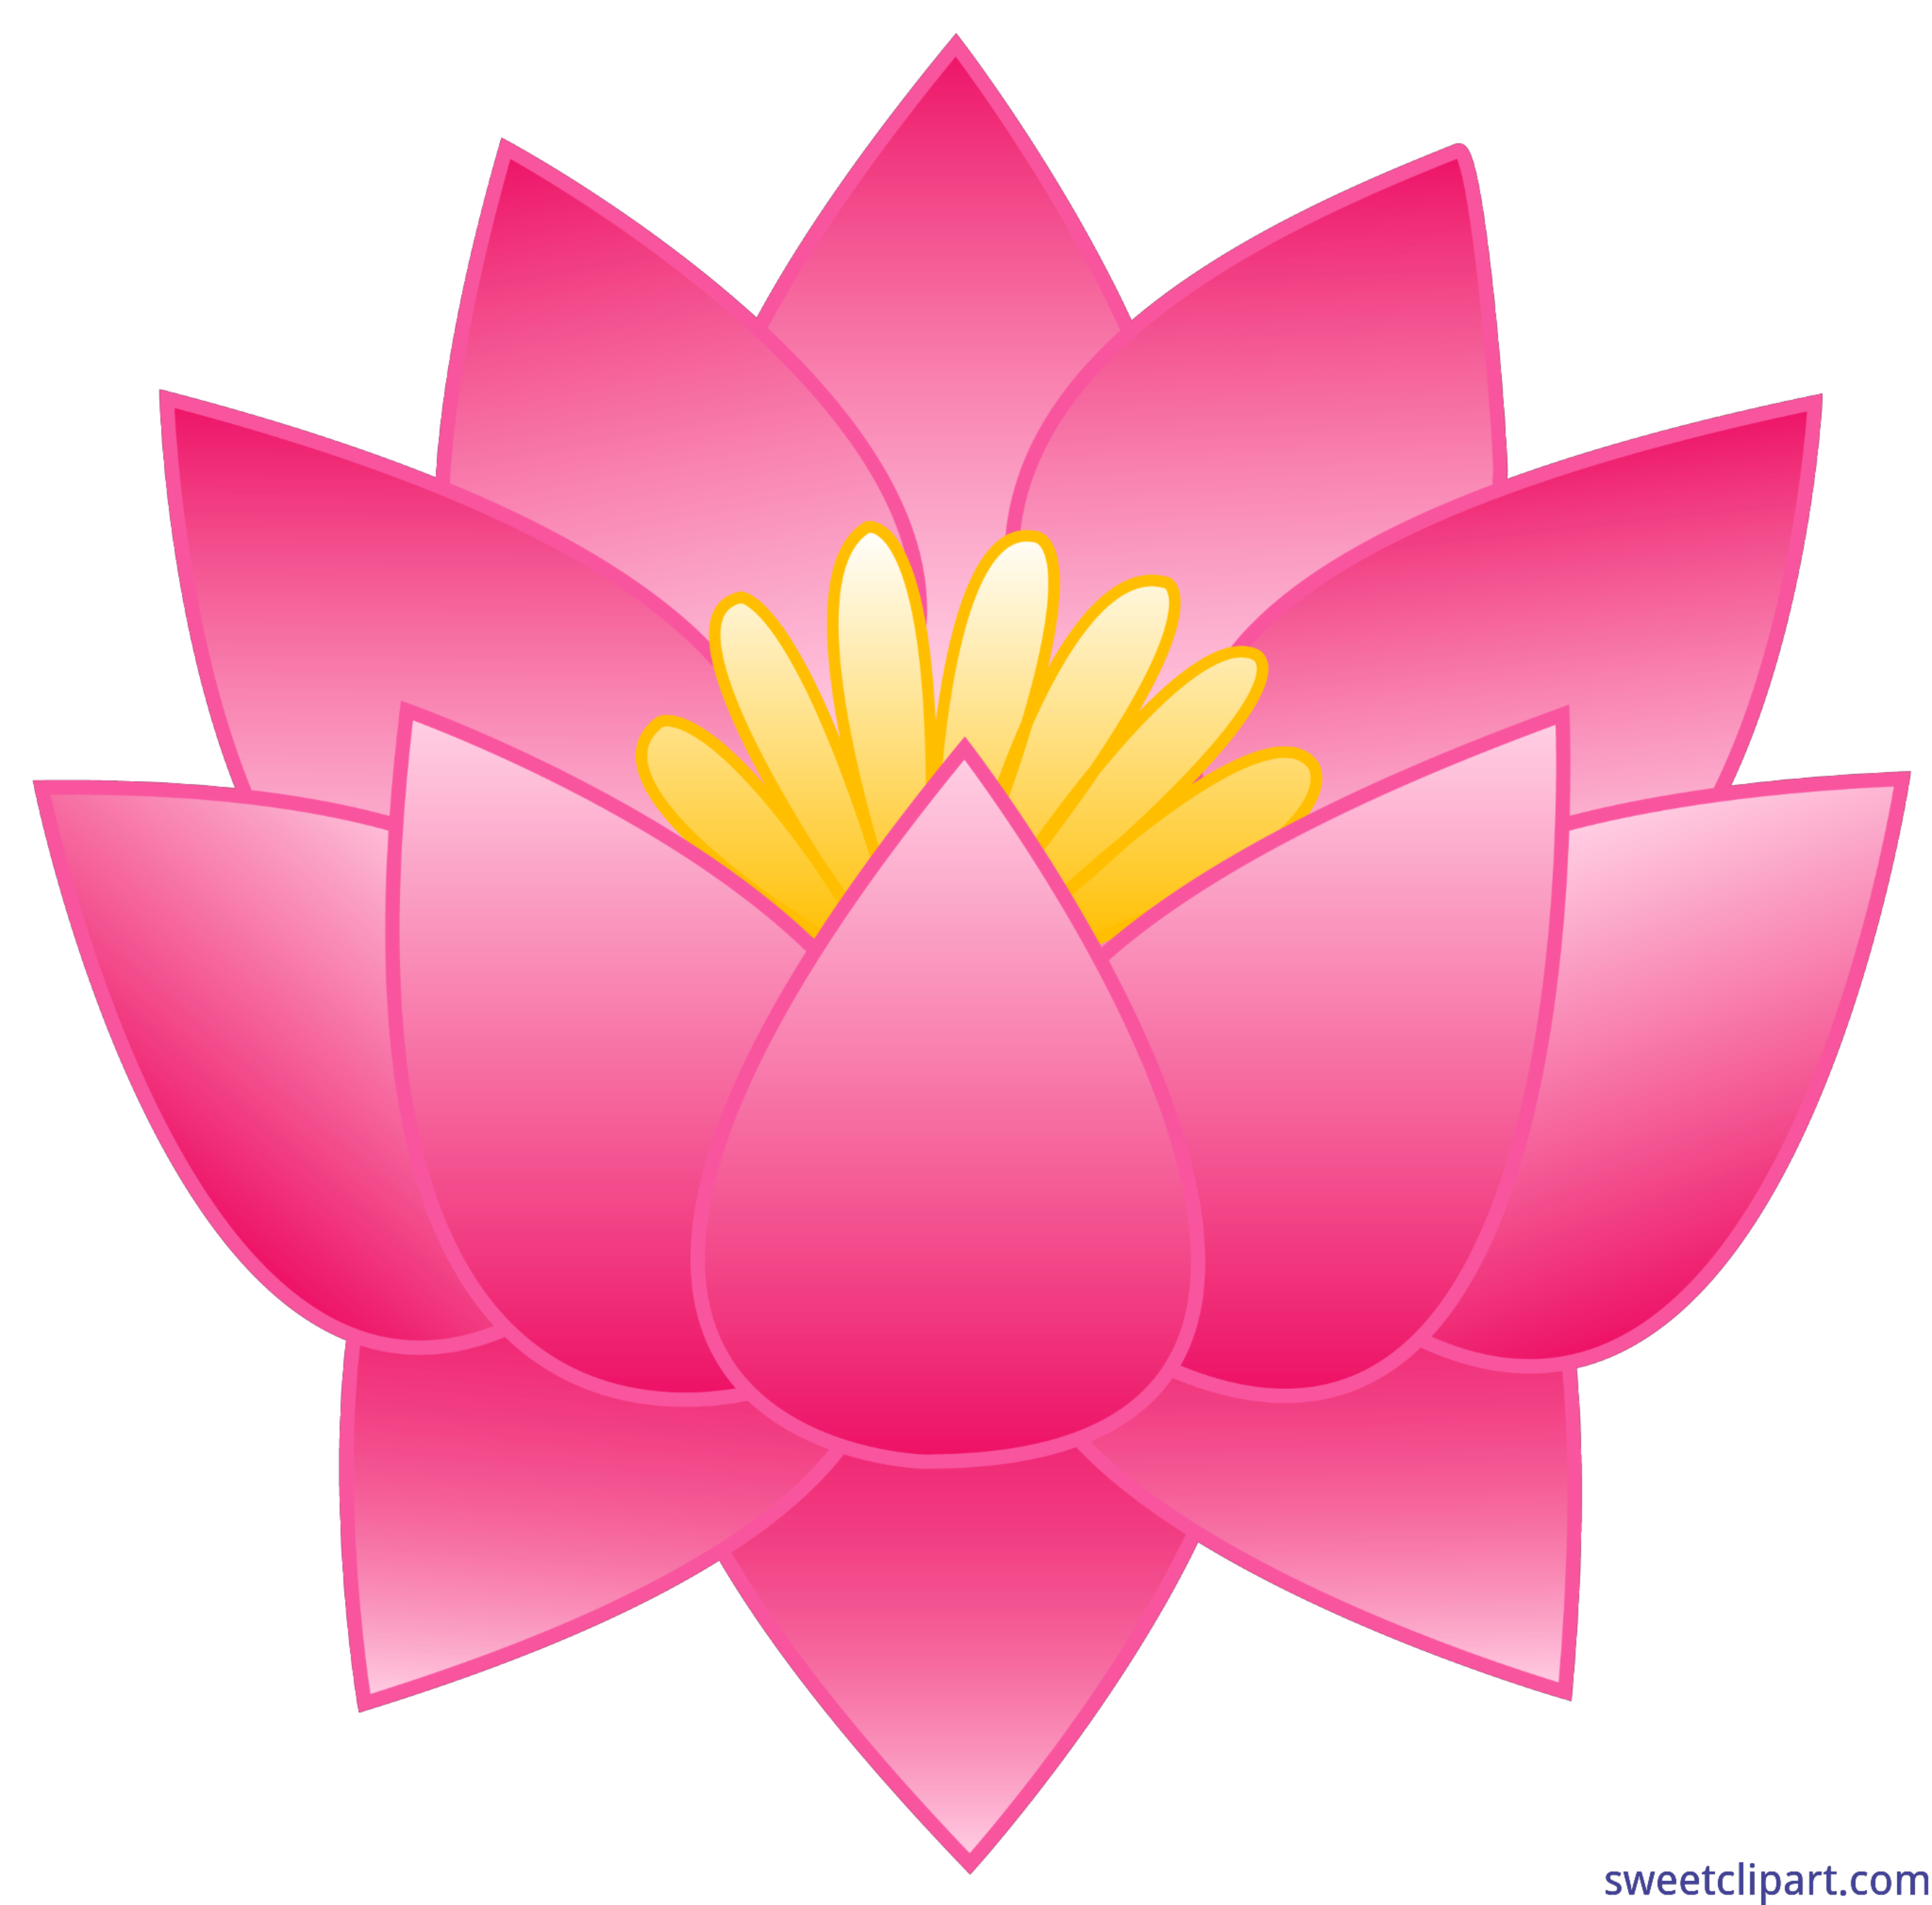 clipart royalty free stock Lotus clipart cool flower. Pink clip art sweet.